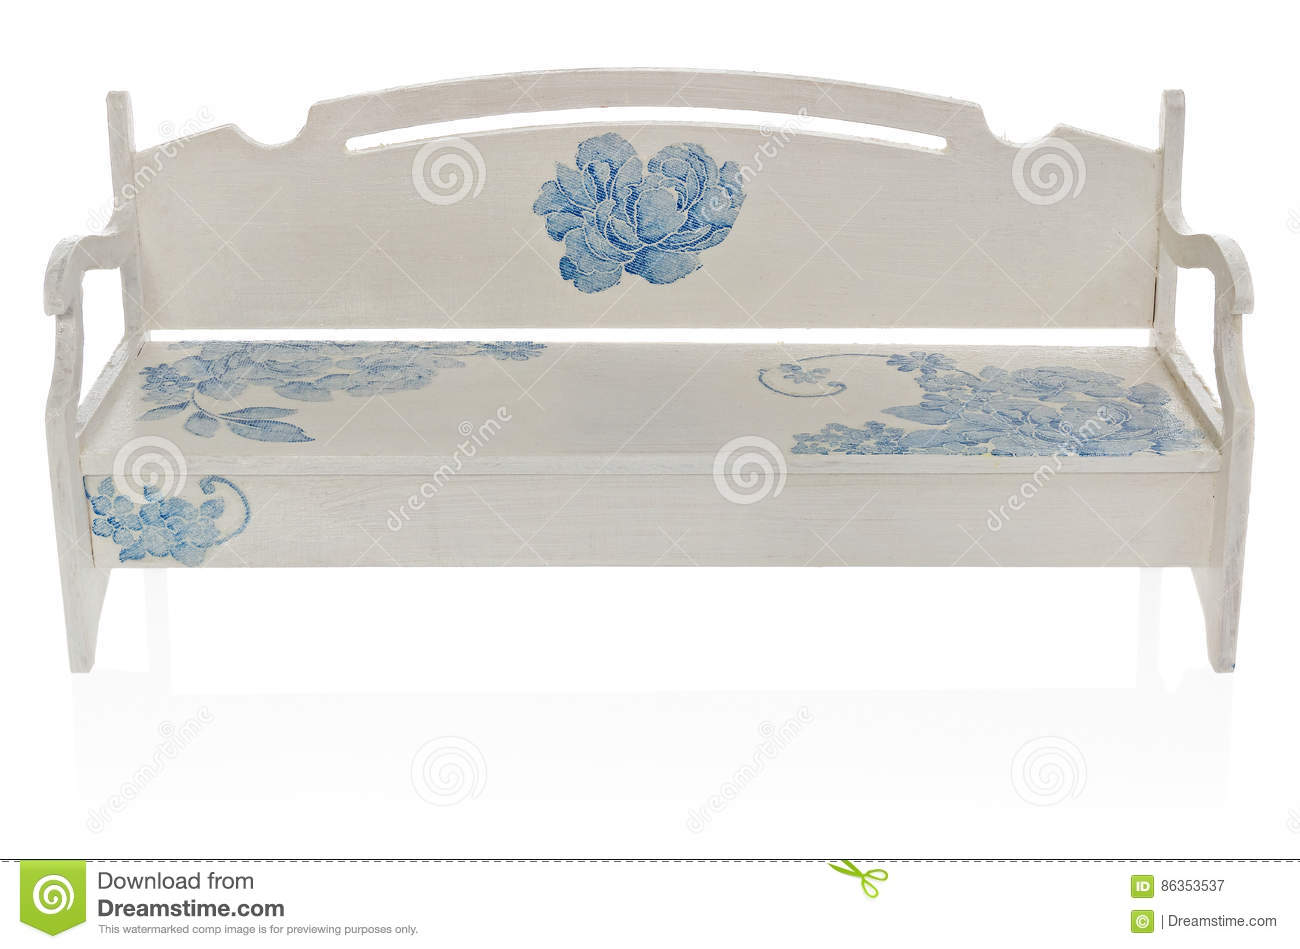 The wooden bench painted white with a pattern of blue flowers.